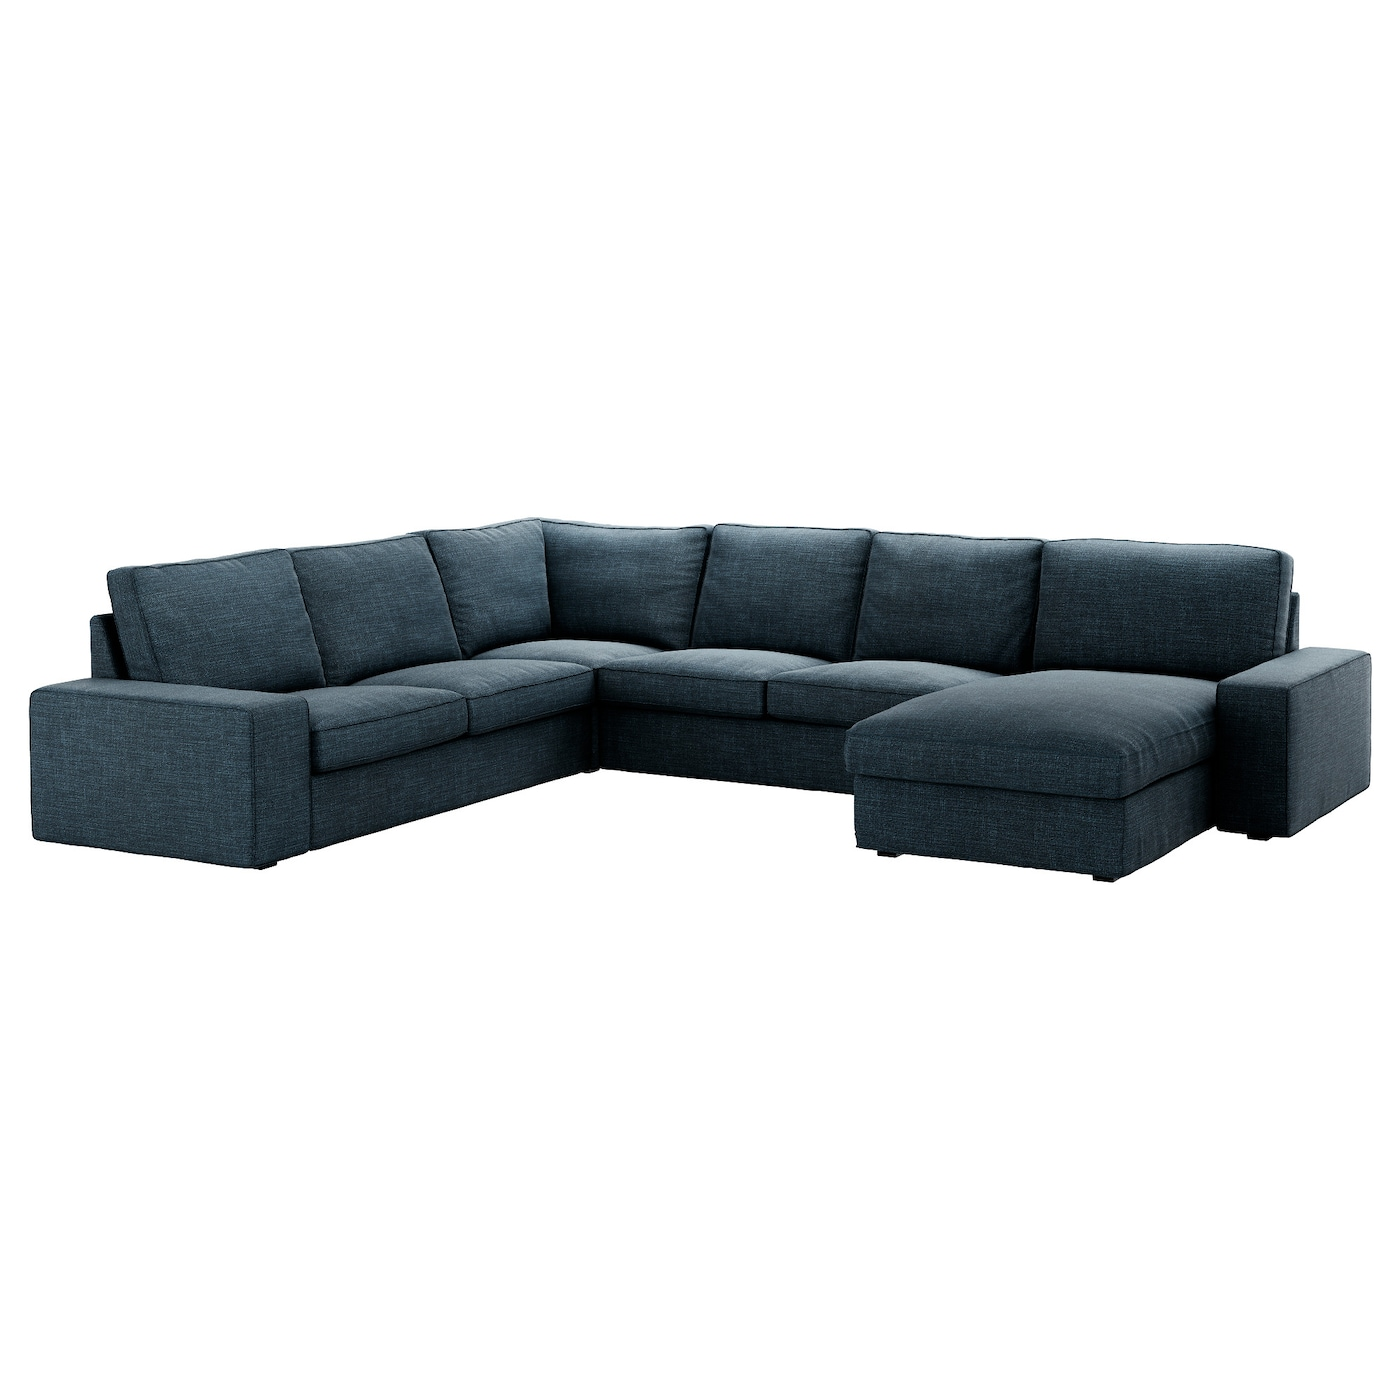 Kivik corner sofa 5 seat with chaise longue hillared dark for 5 seater sofa with chaise